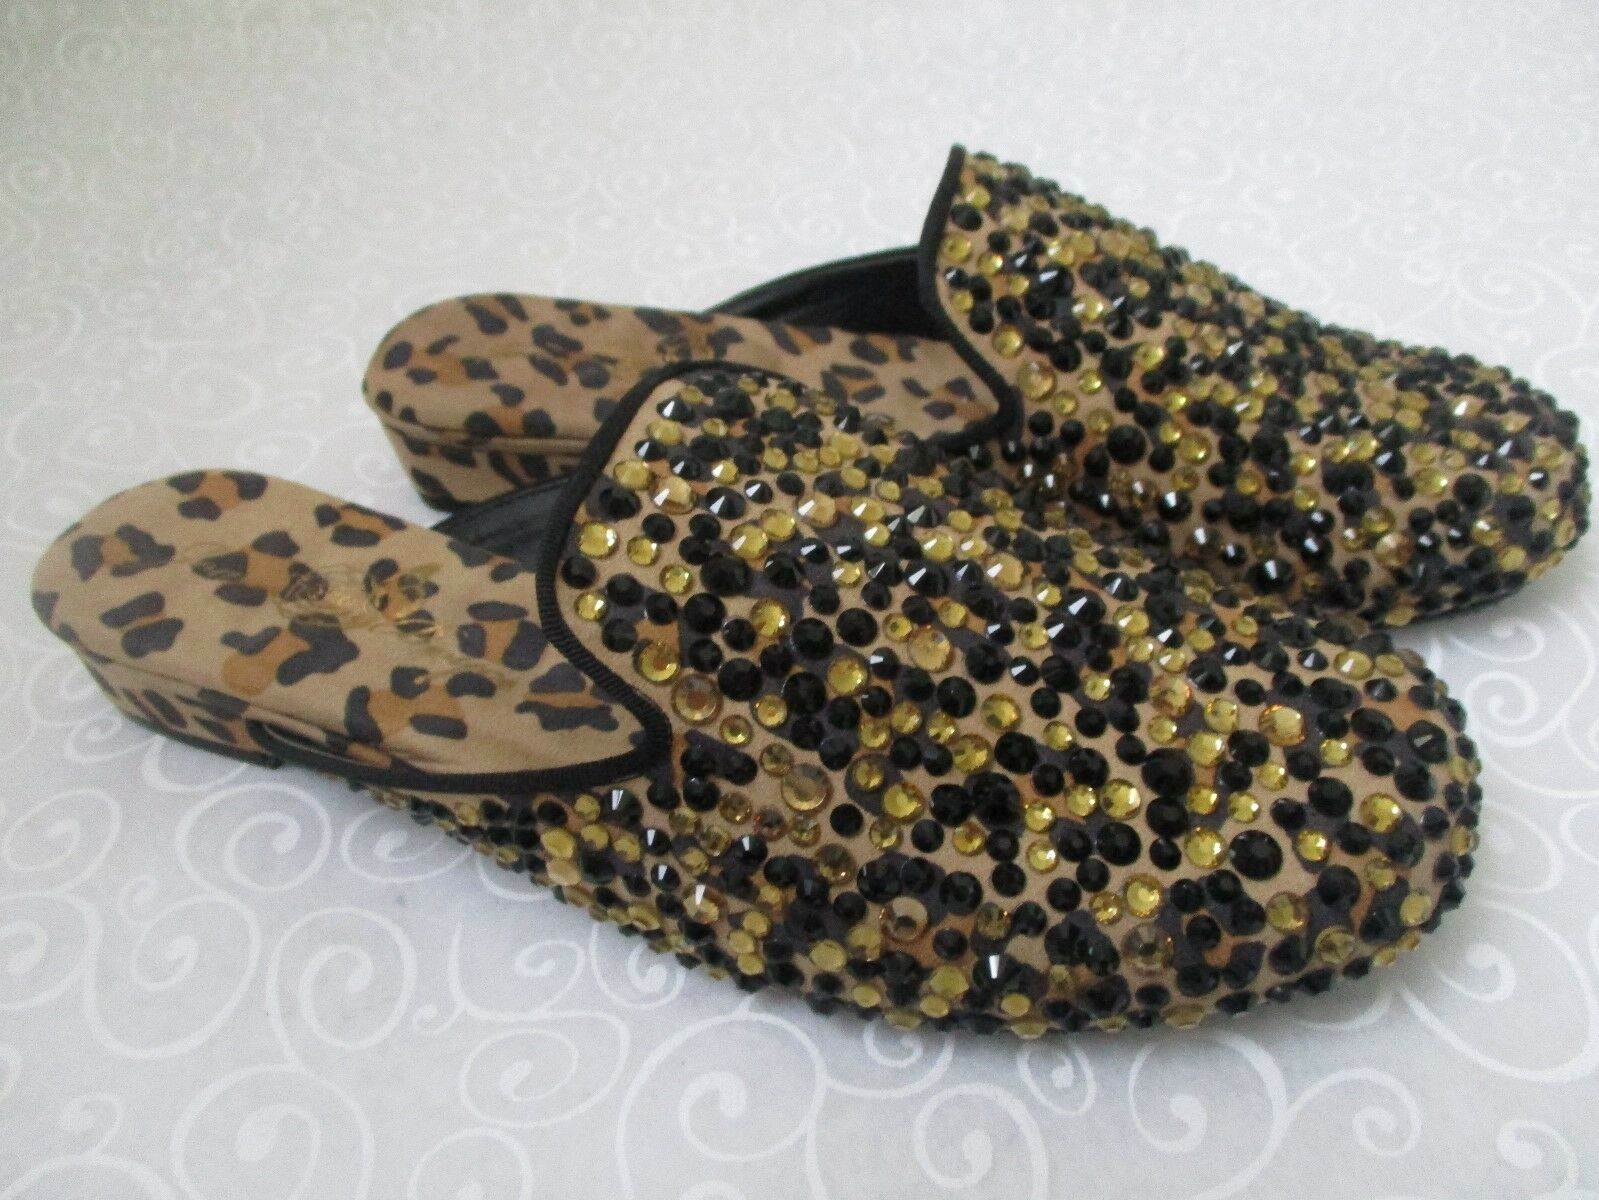 JOAN BOYCE LEOPARD RHINESTONE SLIDES SHOES SIZE 7 1/2 M - NEW